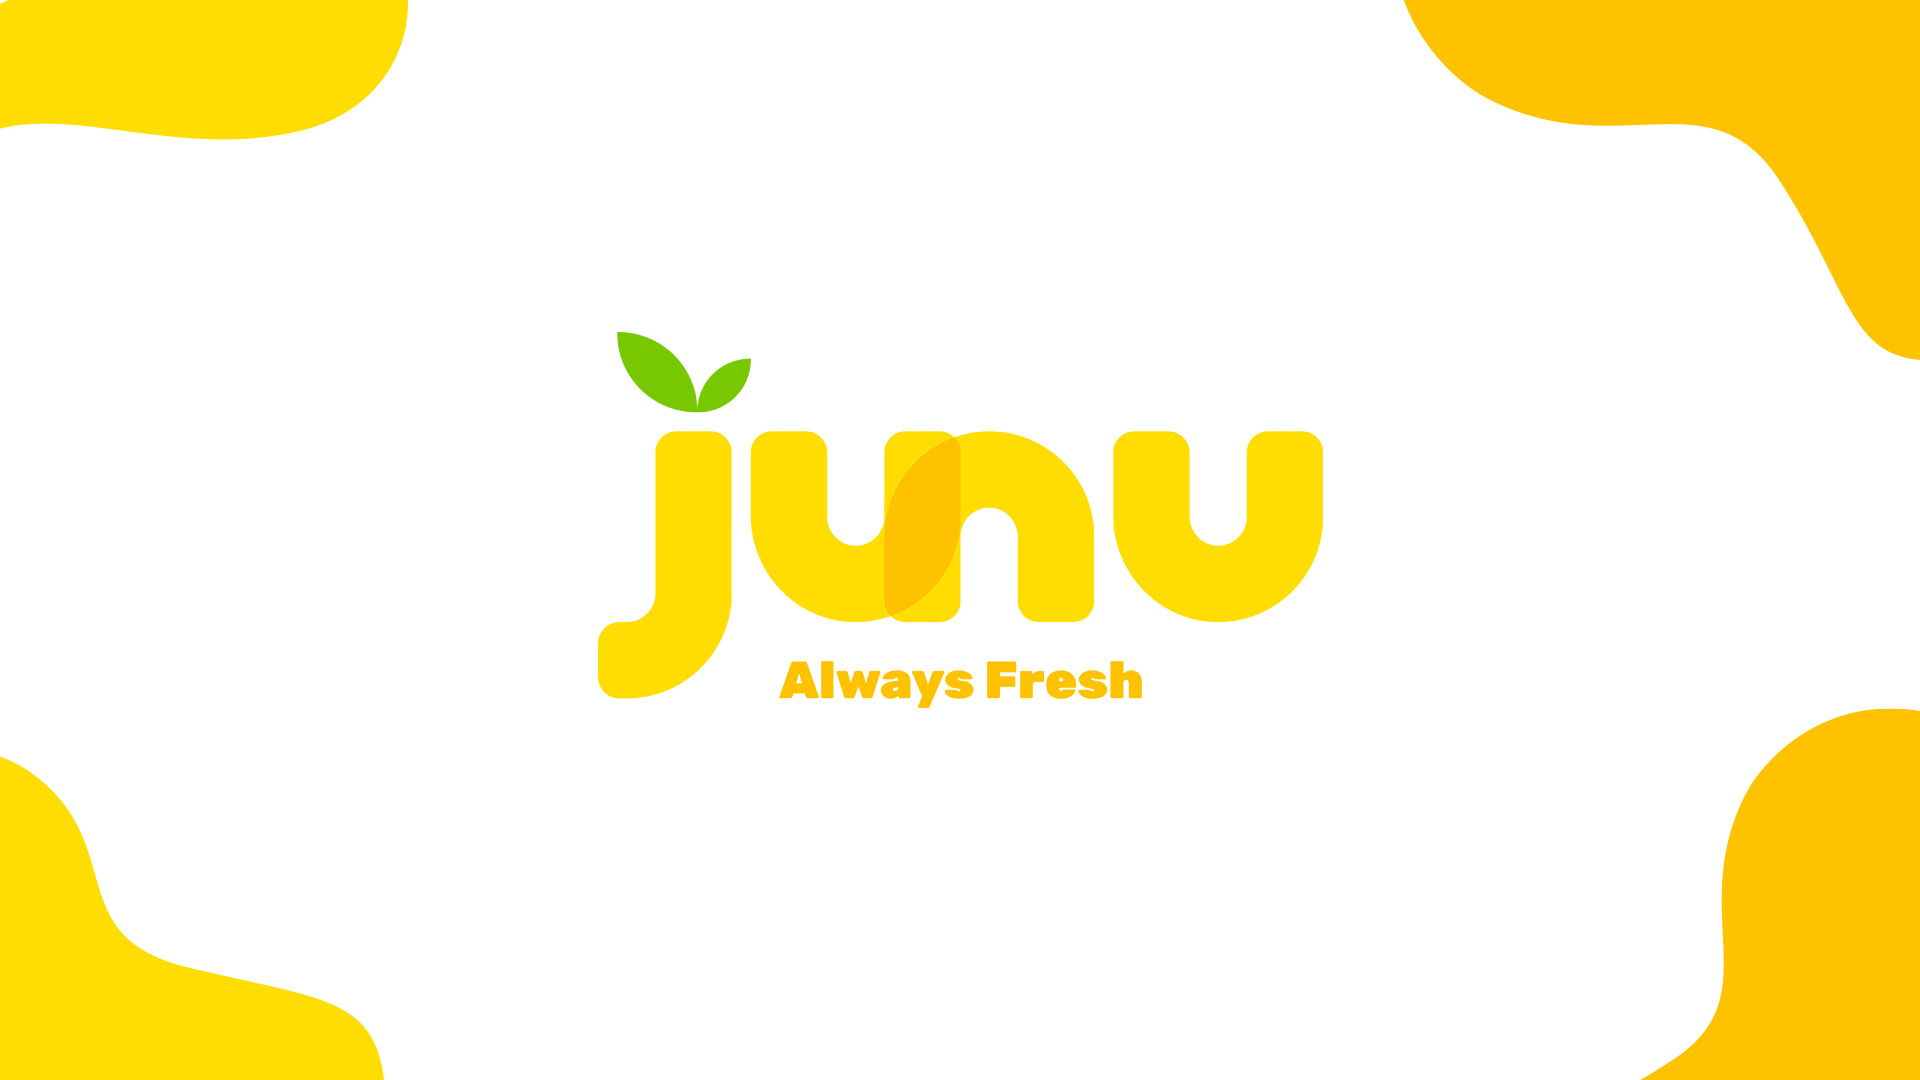 Branding and Packaging For June by Khac Duc